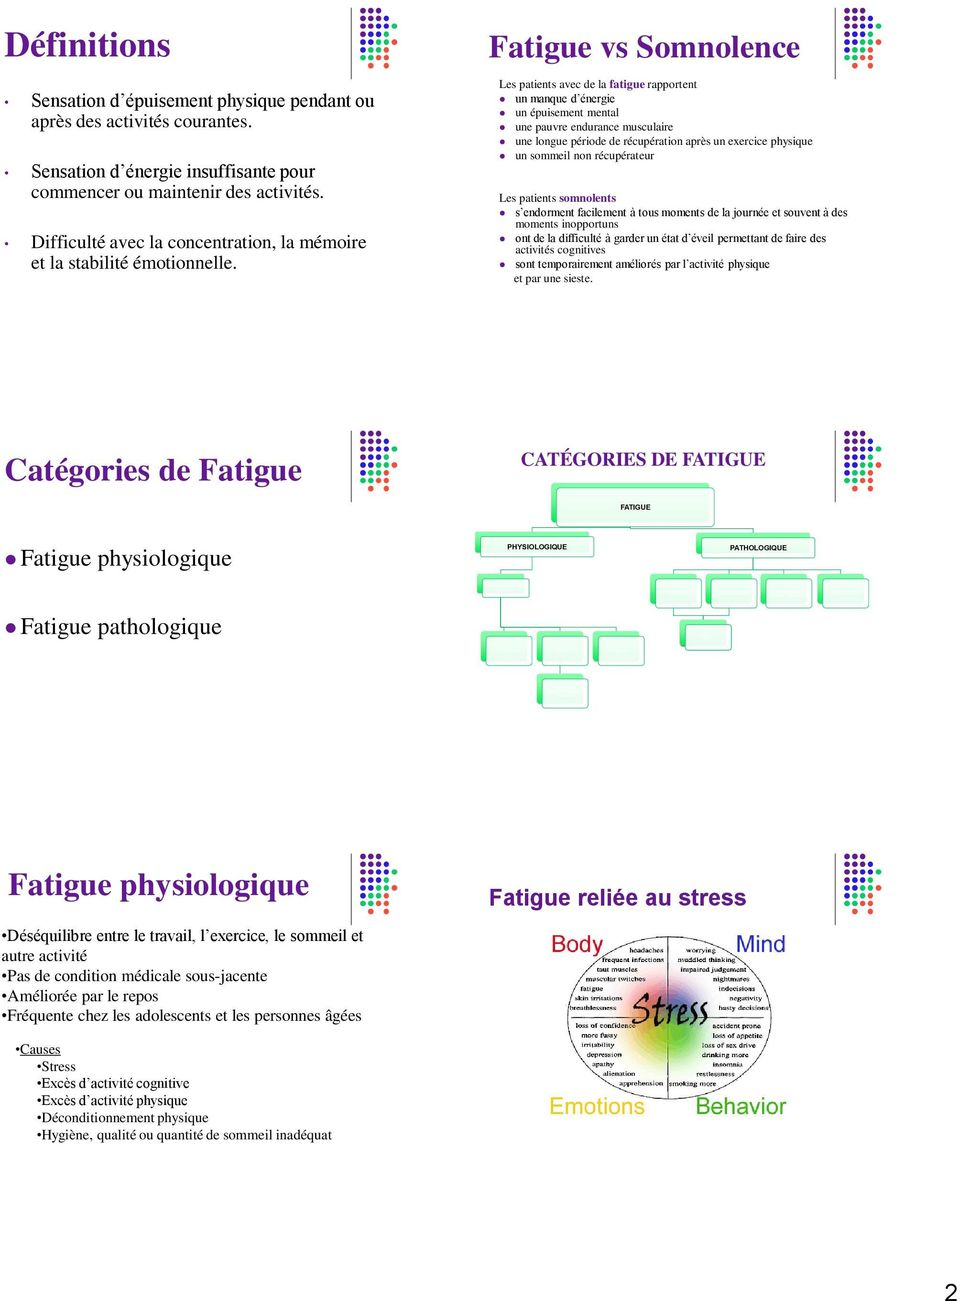 Fatigue vs Somnolence Les patients avec de la fatigue rapportent un manque d énergie un épuisement mental une pauvre endurance musculaire une longue période de récupération après un exercice physique